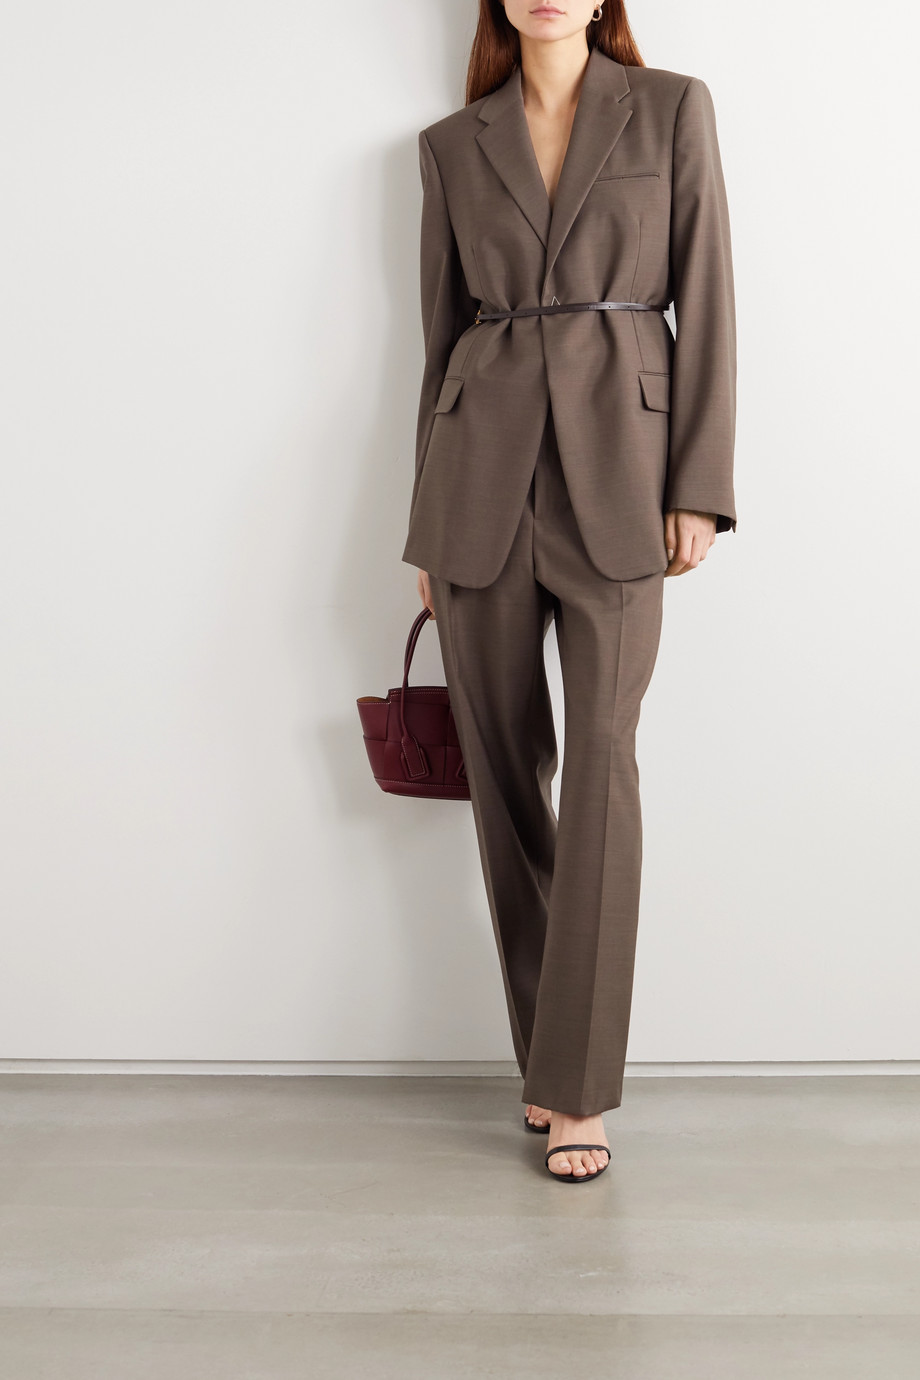 Bottega Veneta Wool wide-leg pants